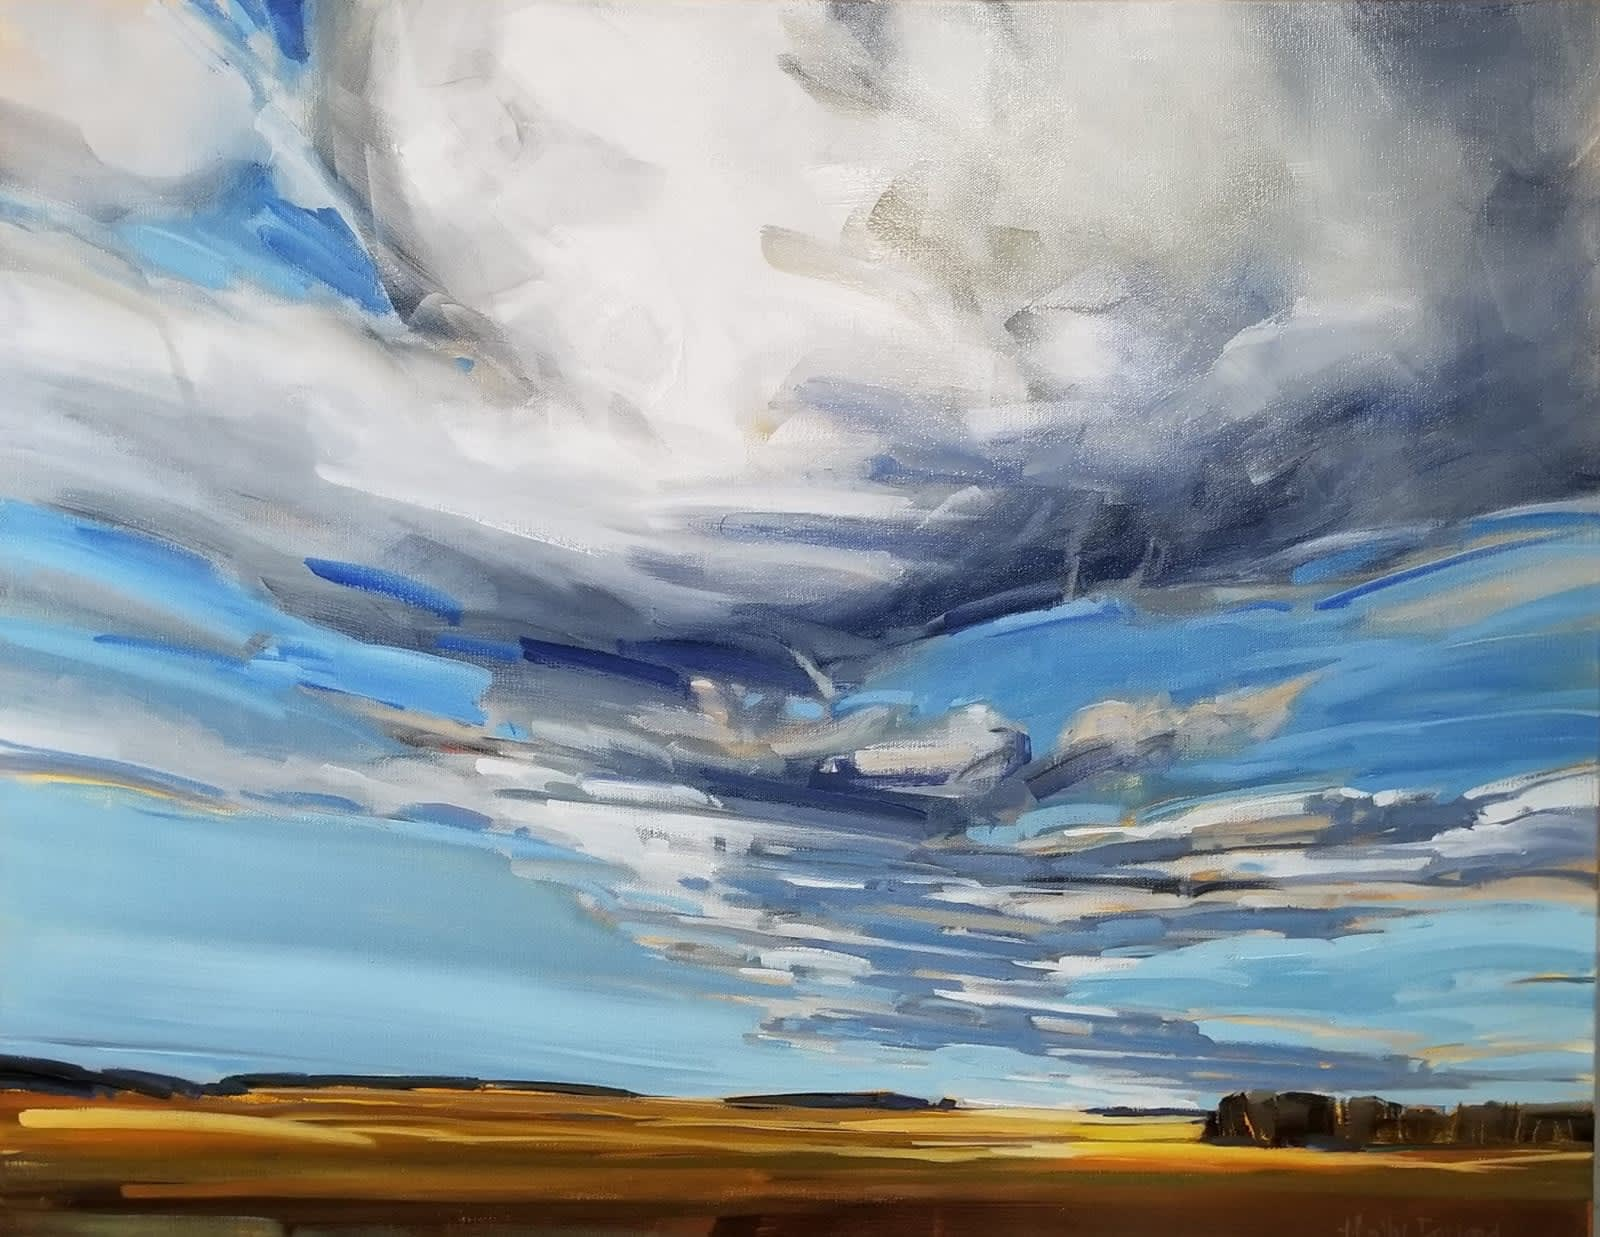 Rotating Featured Works From Gallery Artists This Land is Our Land 14 July - 14 August 2021